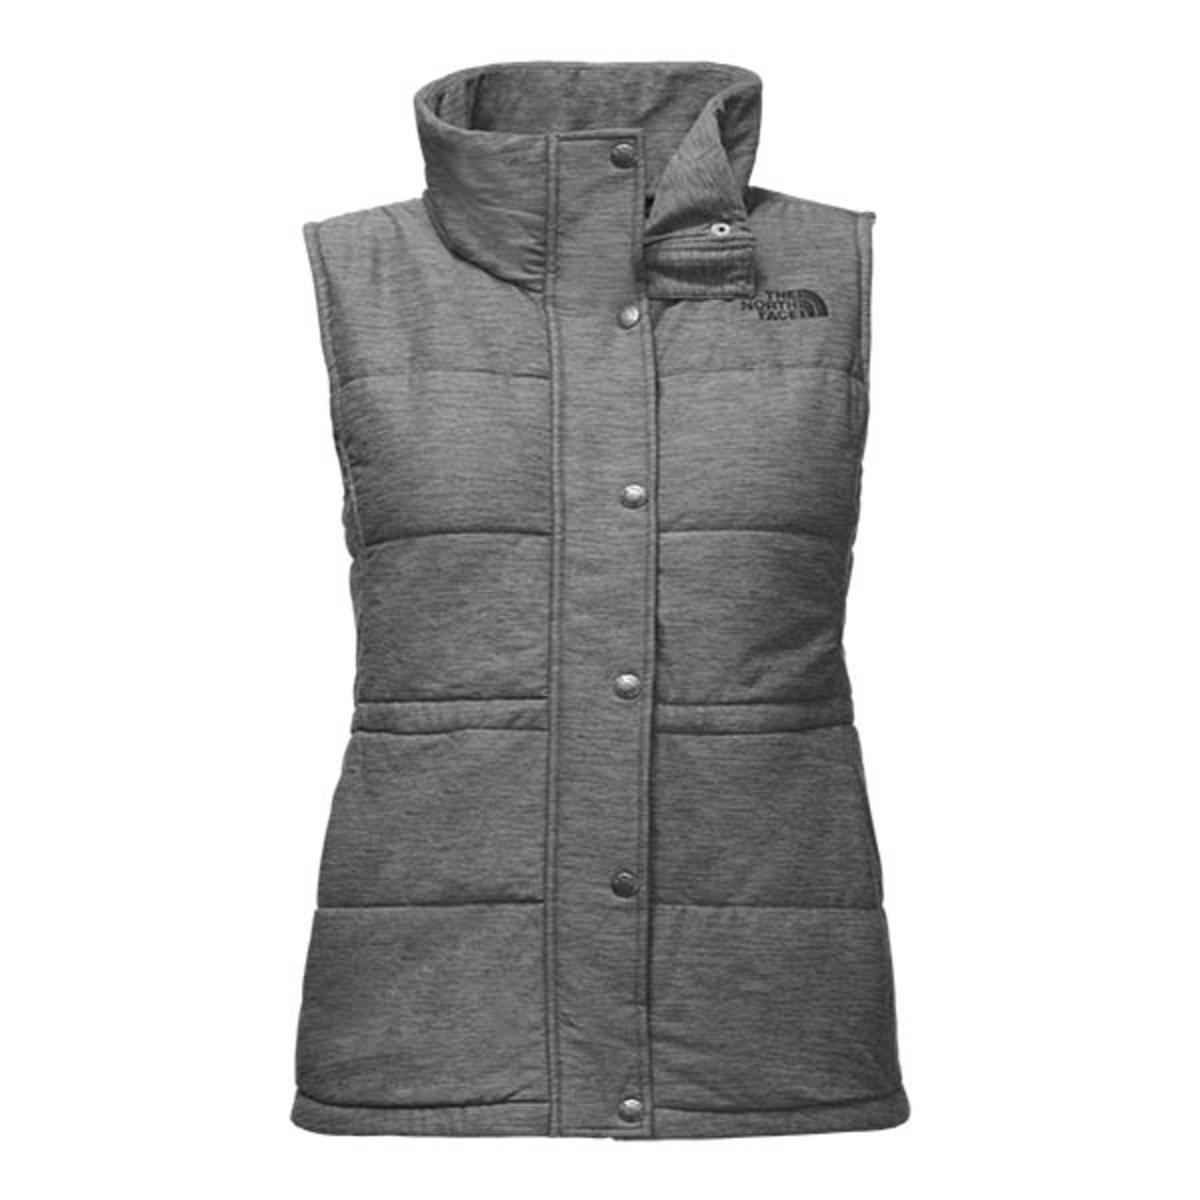 45a182b5395a The North Face Women s Pseudio Vest - The Warming Store